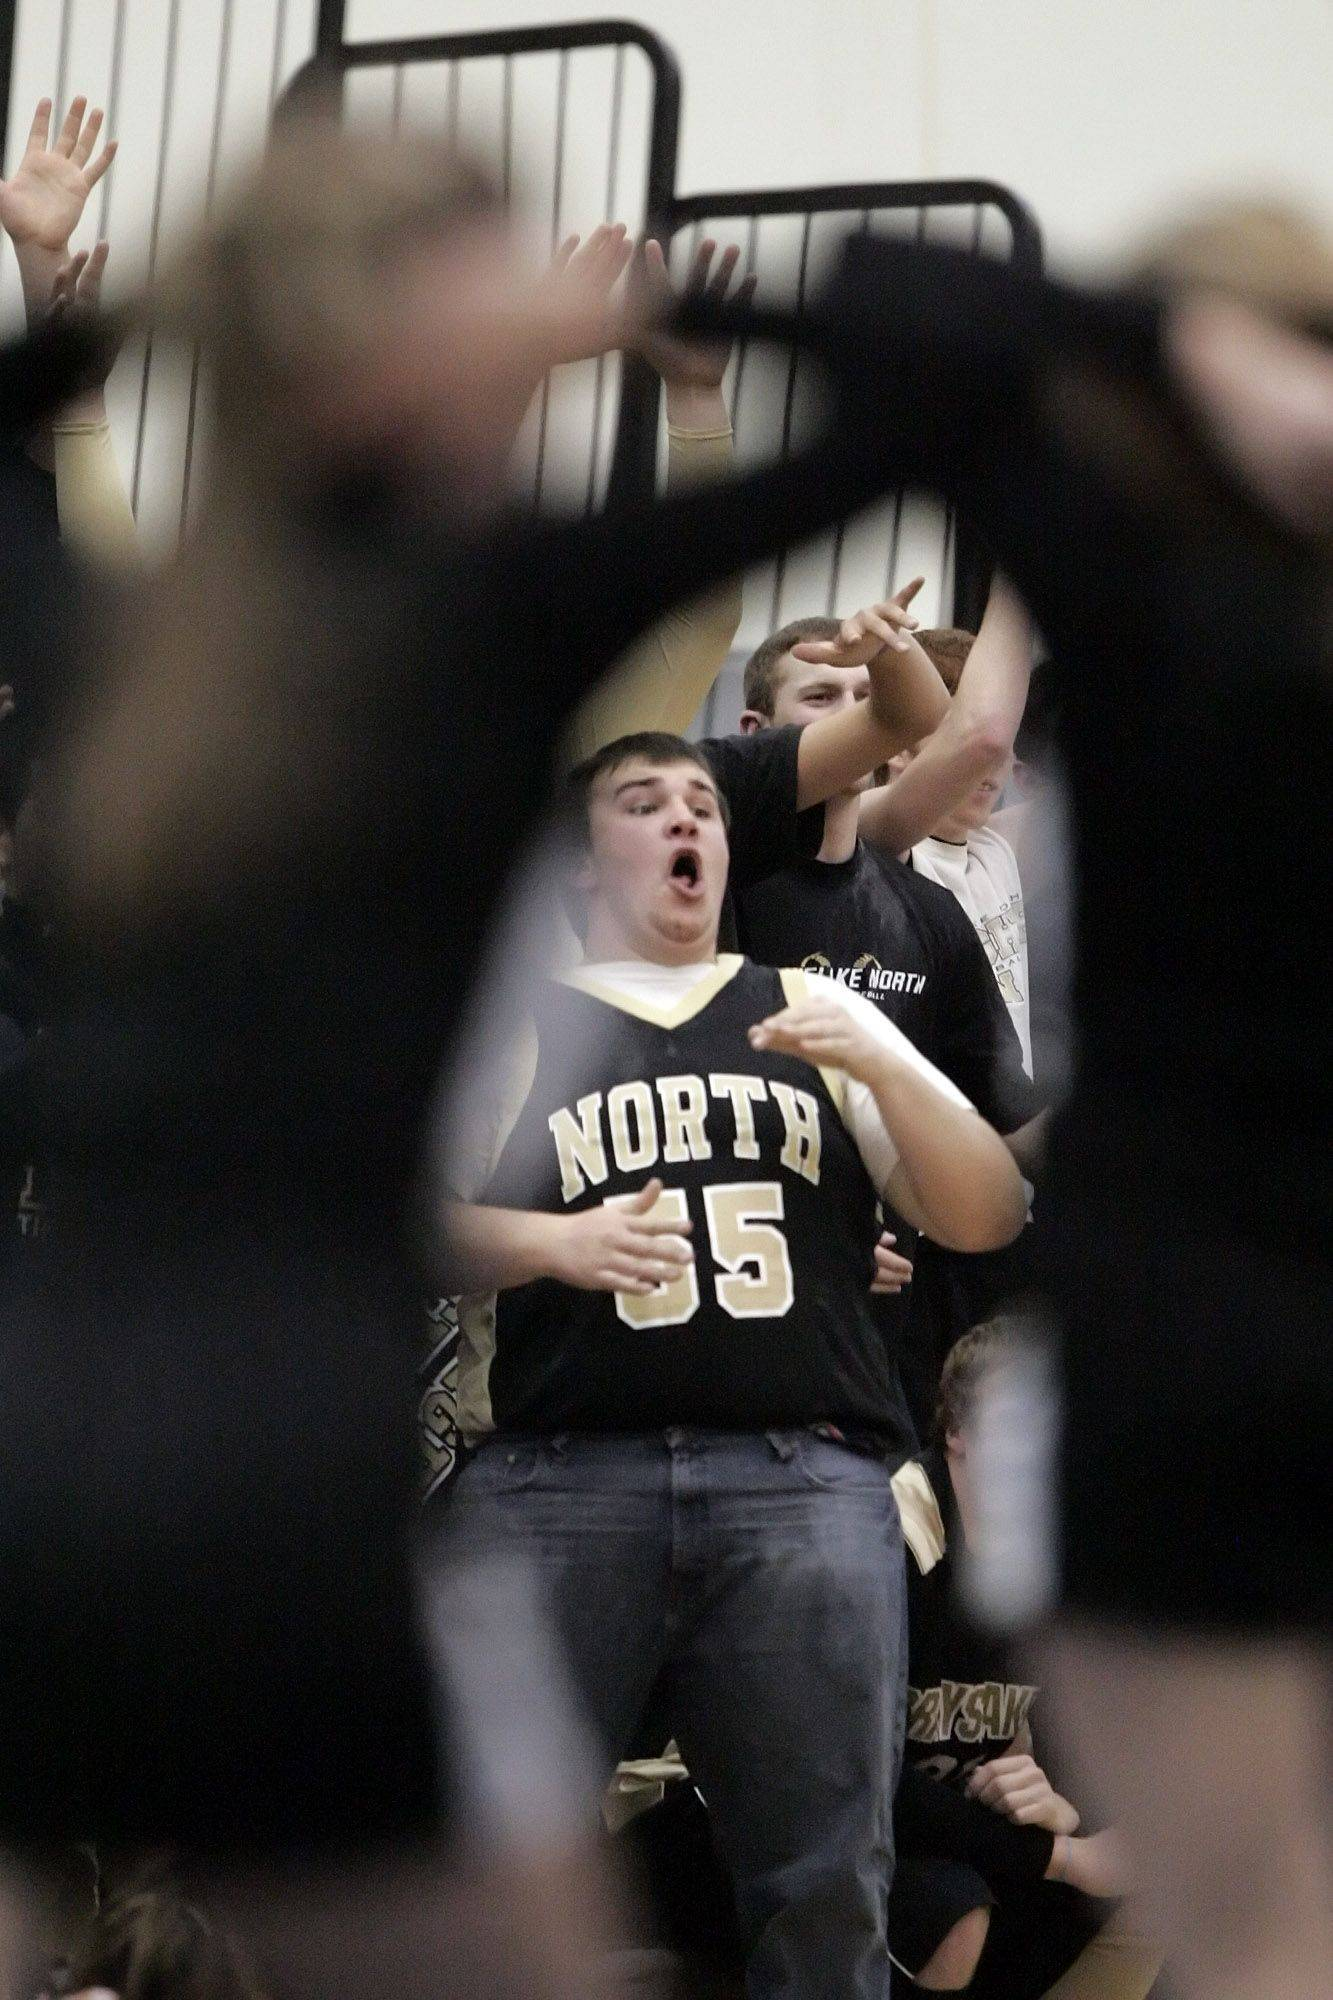 Images from the McHenry at Grayslake North boys basketball game Wednesday, December 15.